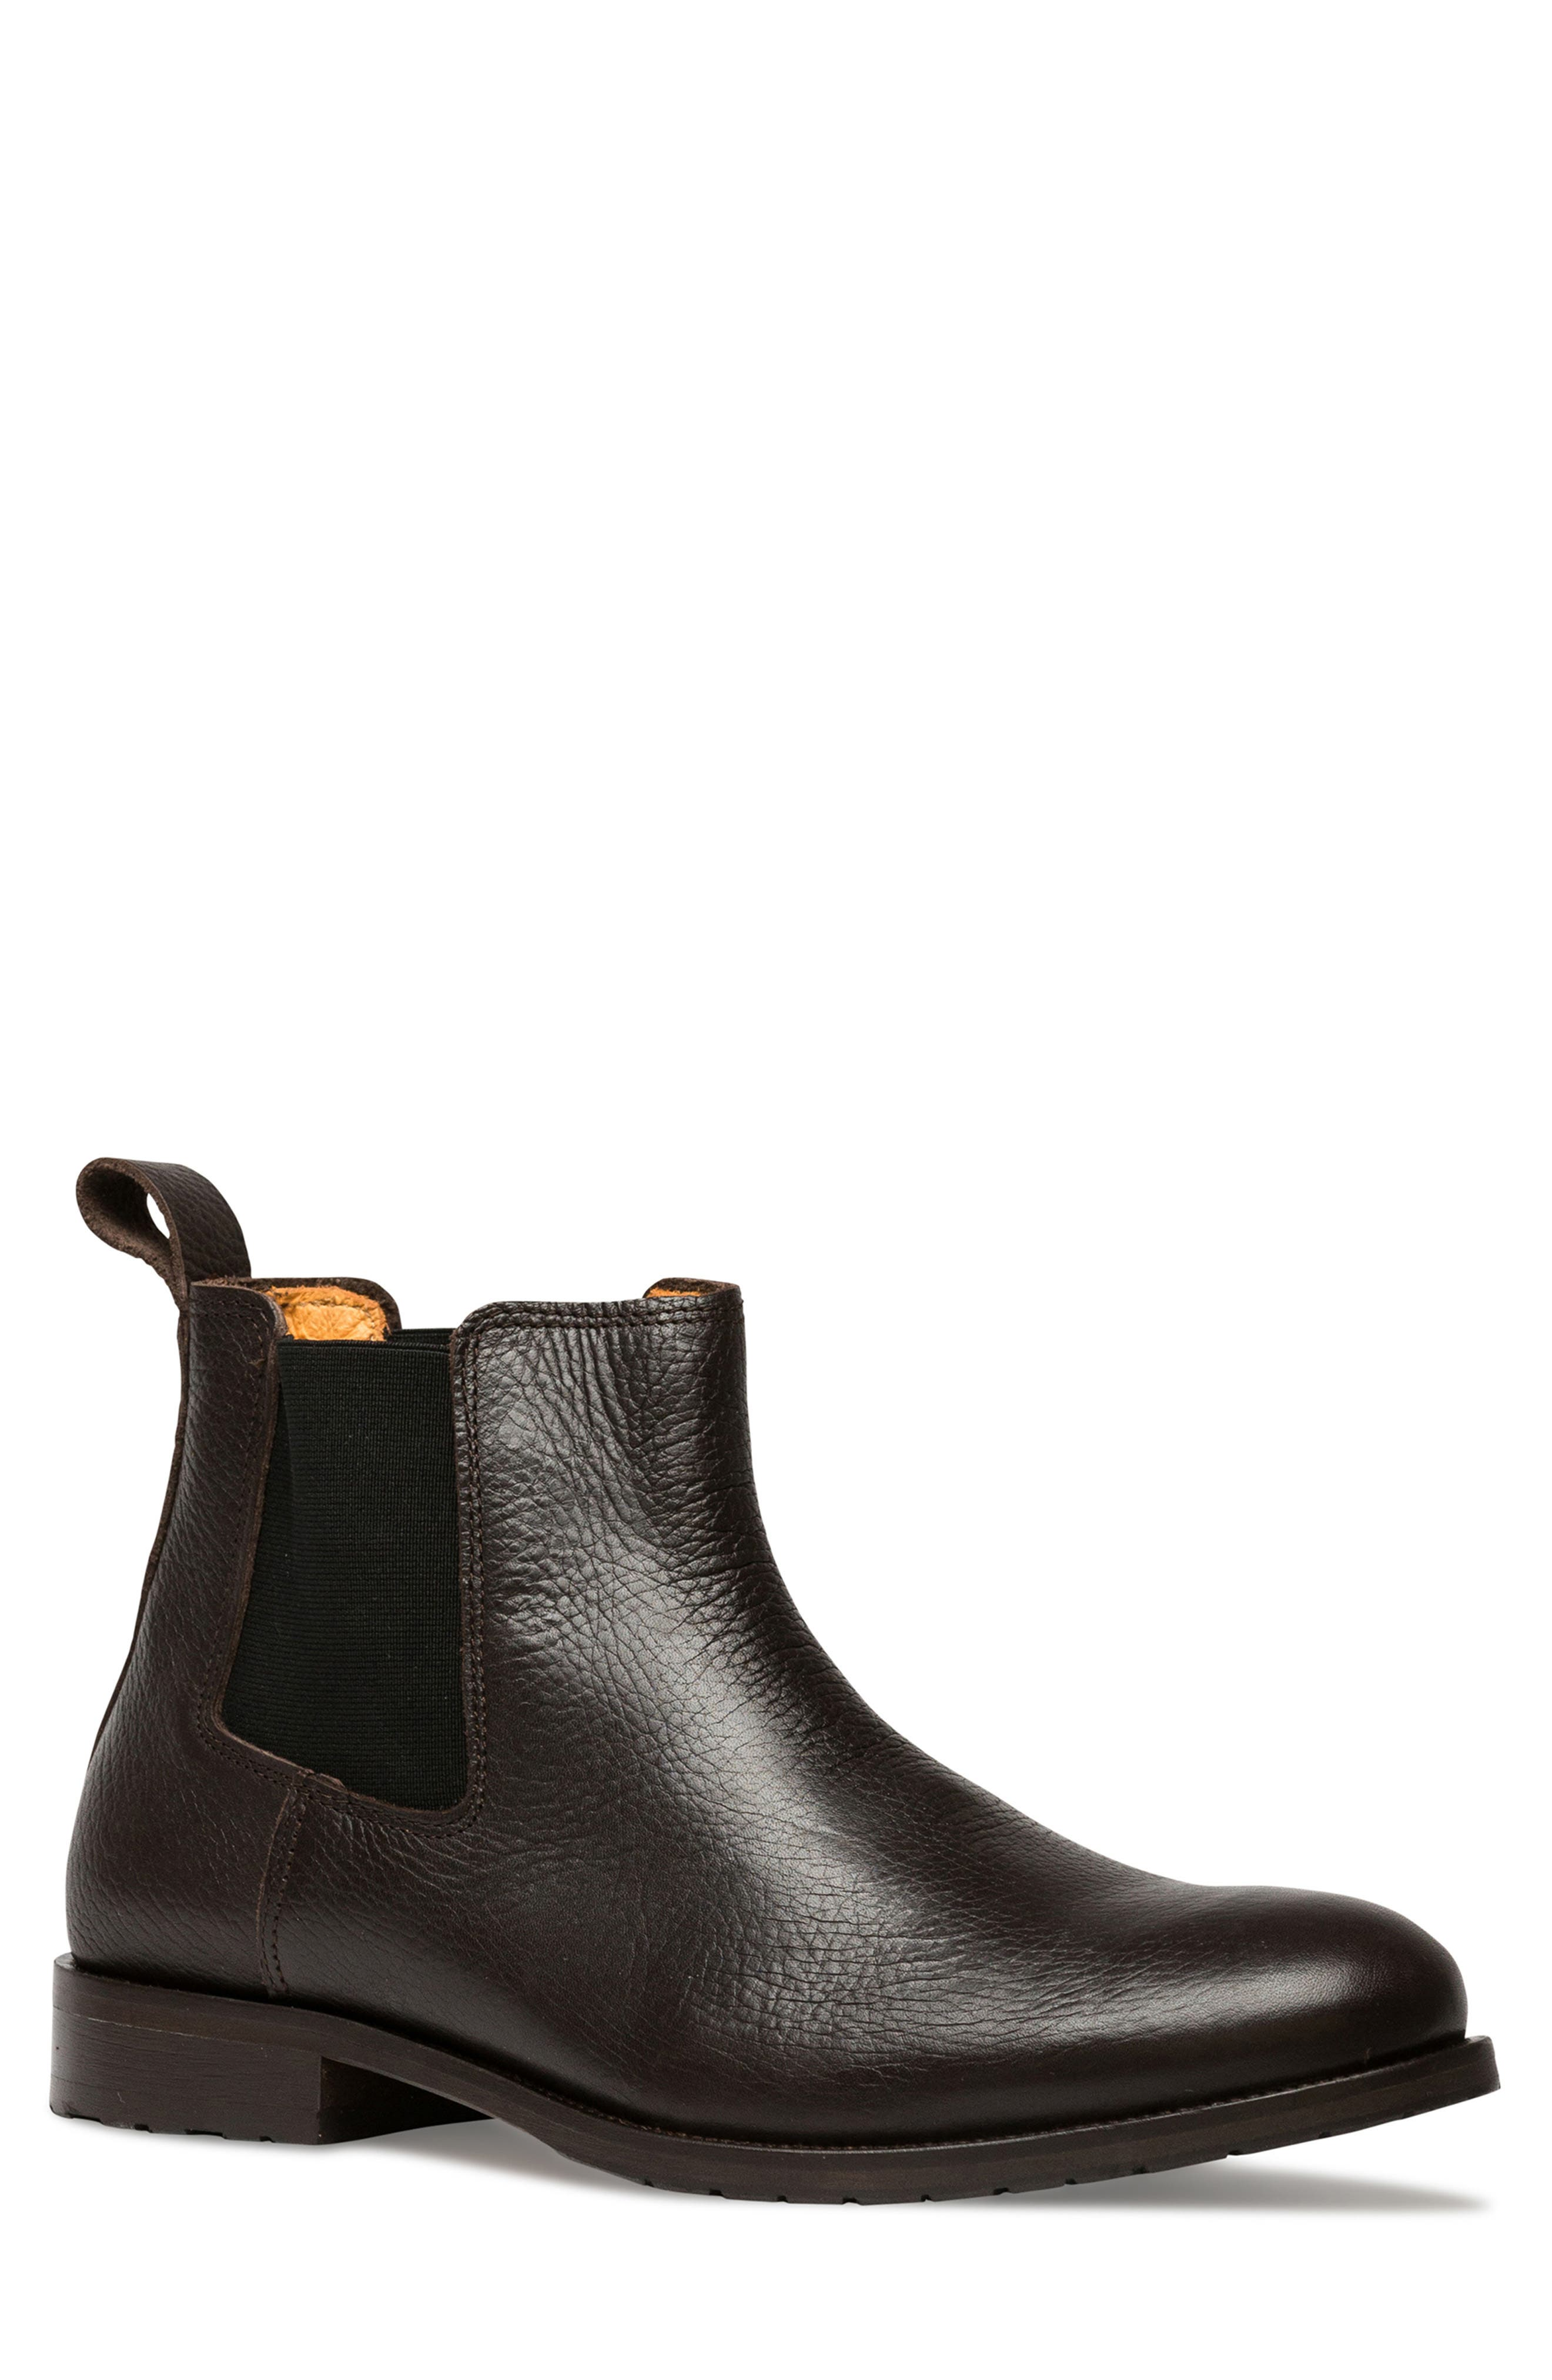 Westholme Chelsea Boot,                             Main thumbnail 1, color,                             CHOCOLATE LEATHER